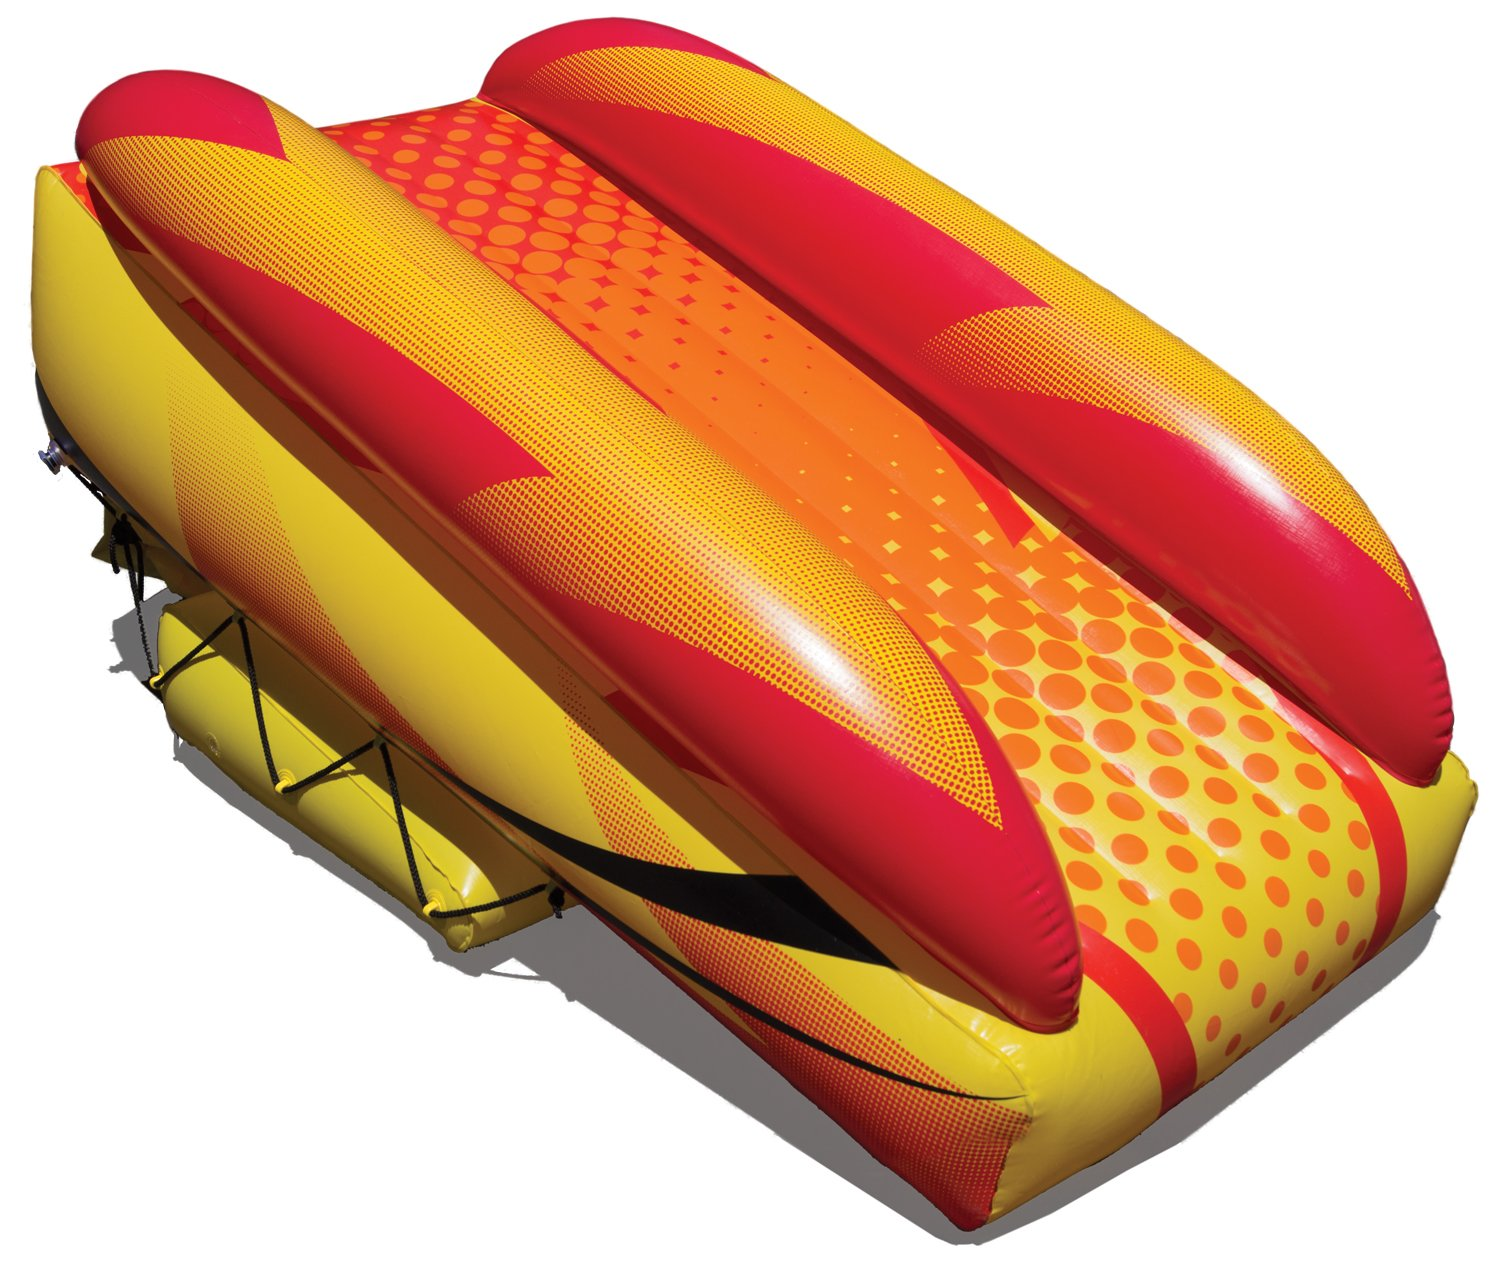 Poolmaster 86233 Aqua Launch Inflatable Pool Slide